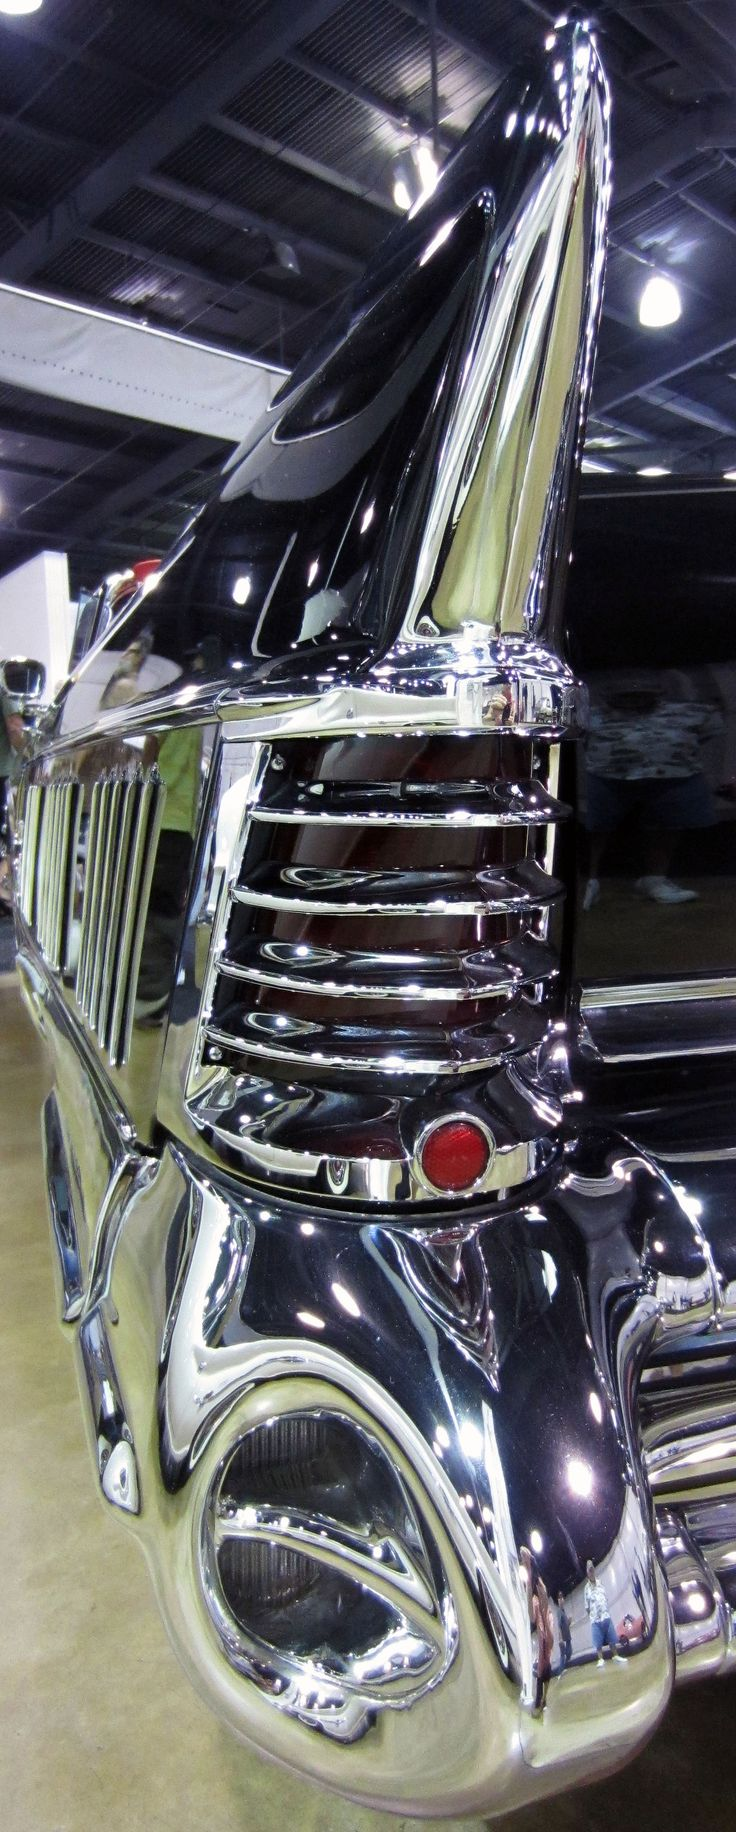 Barrett-Jackson Auction. Orange County, CA. 2012.